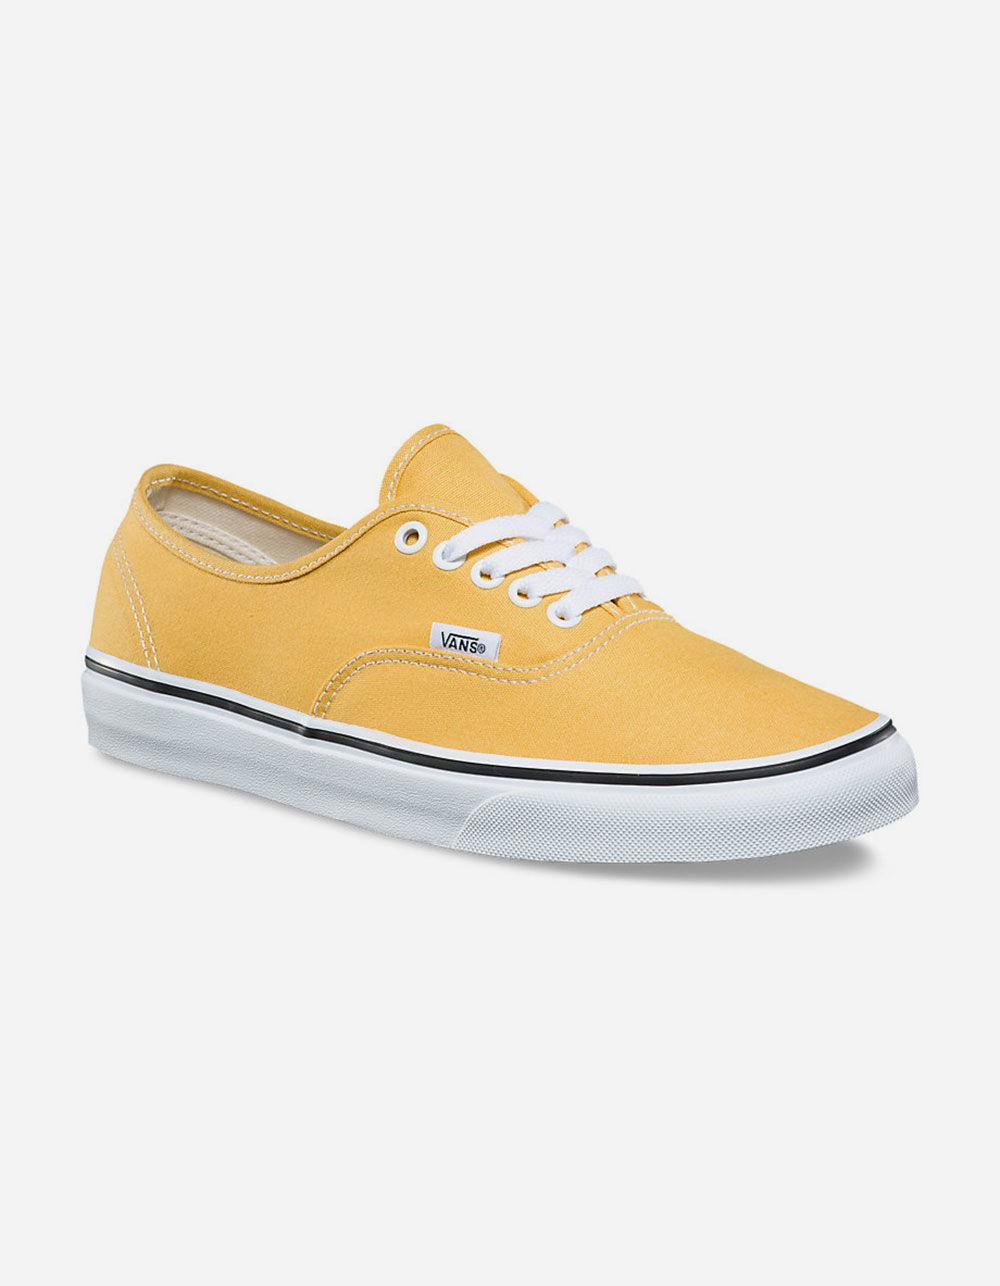 899aa588ea4 Lyst - Vans Authentic Ochre   True White Womens Shoes in White